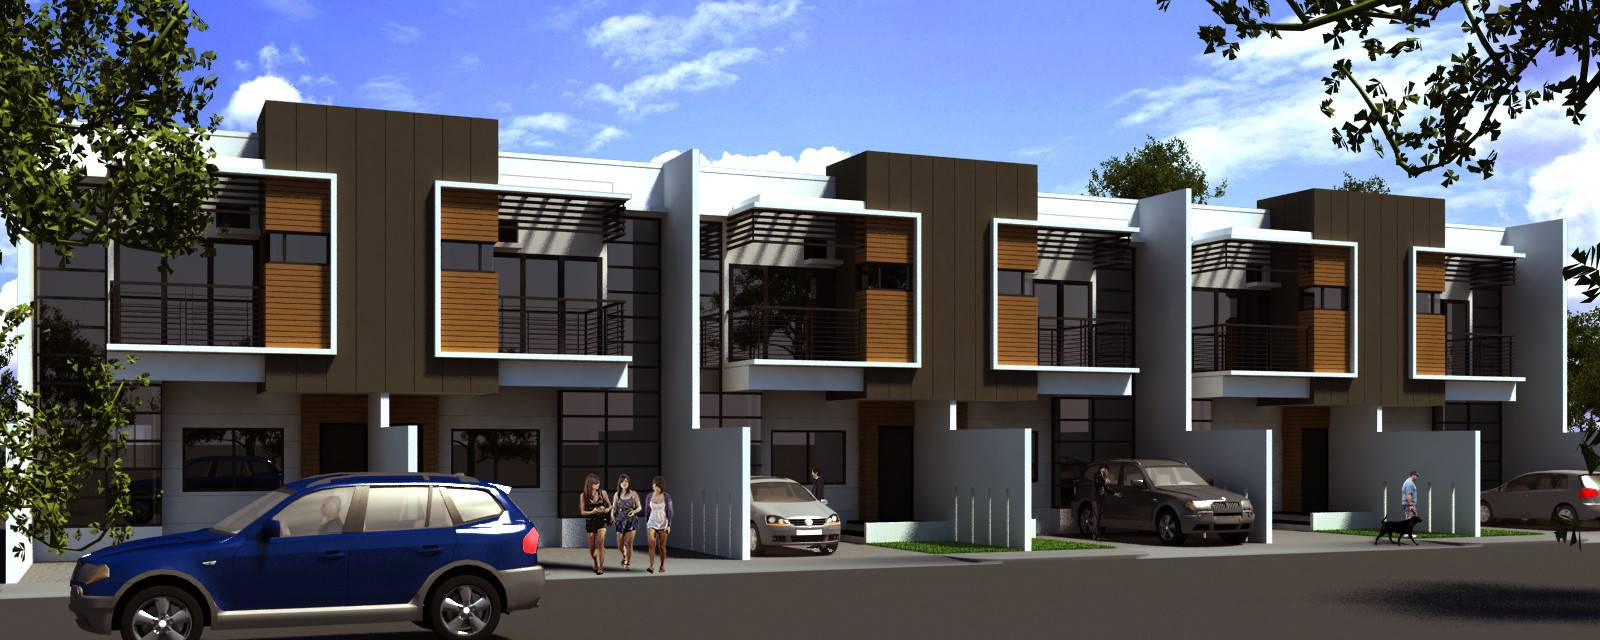 Modern Row House Design Planning Houses Architecture Homes Decor